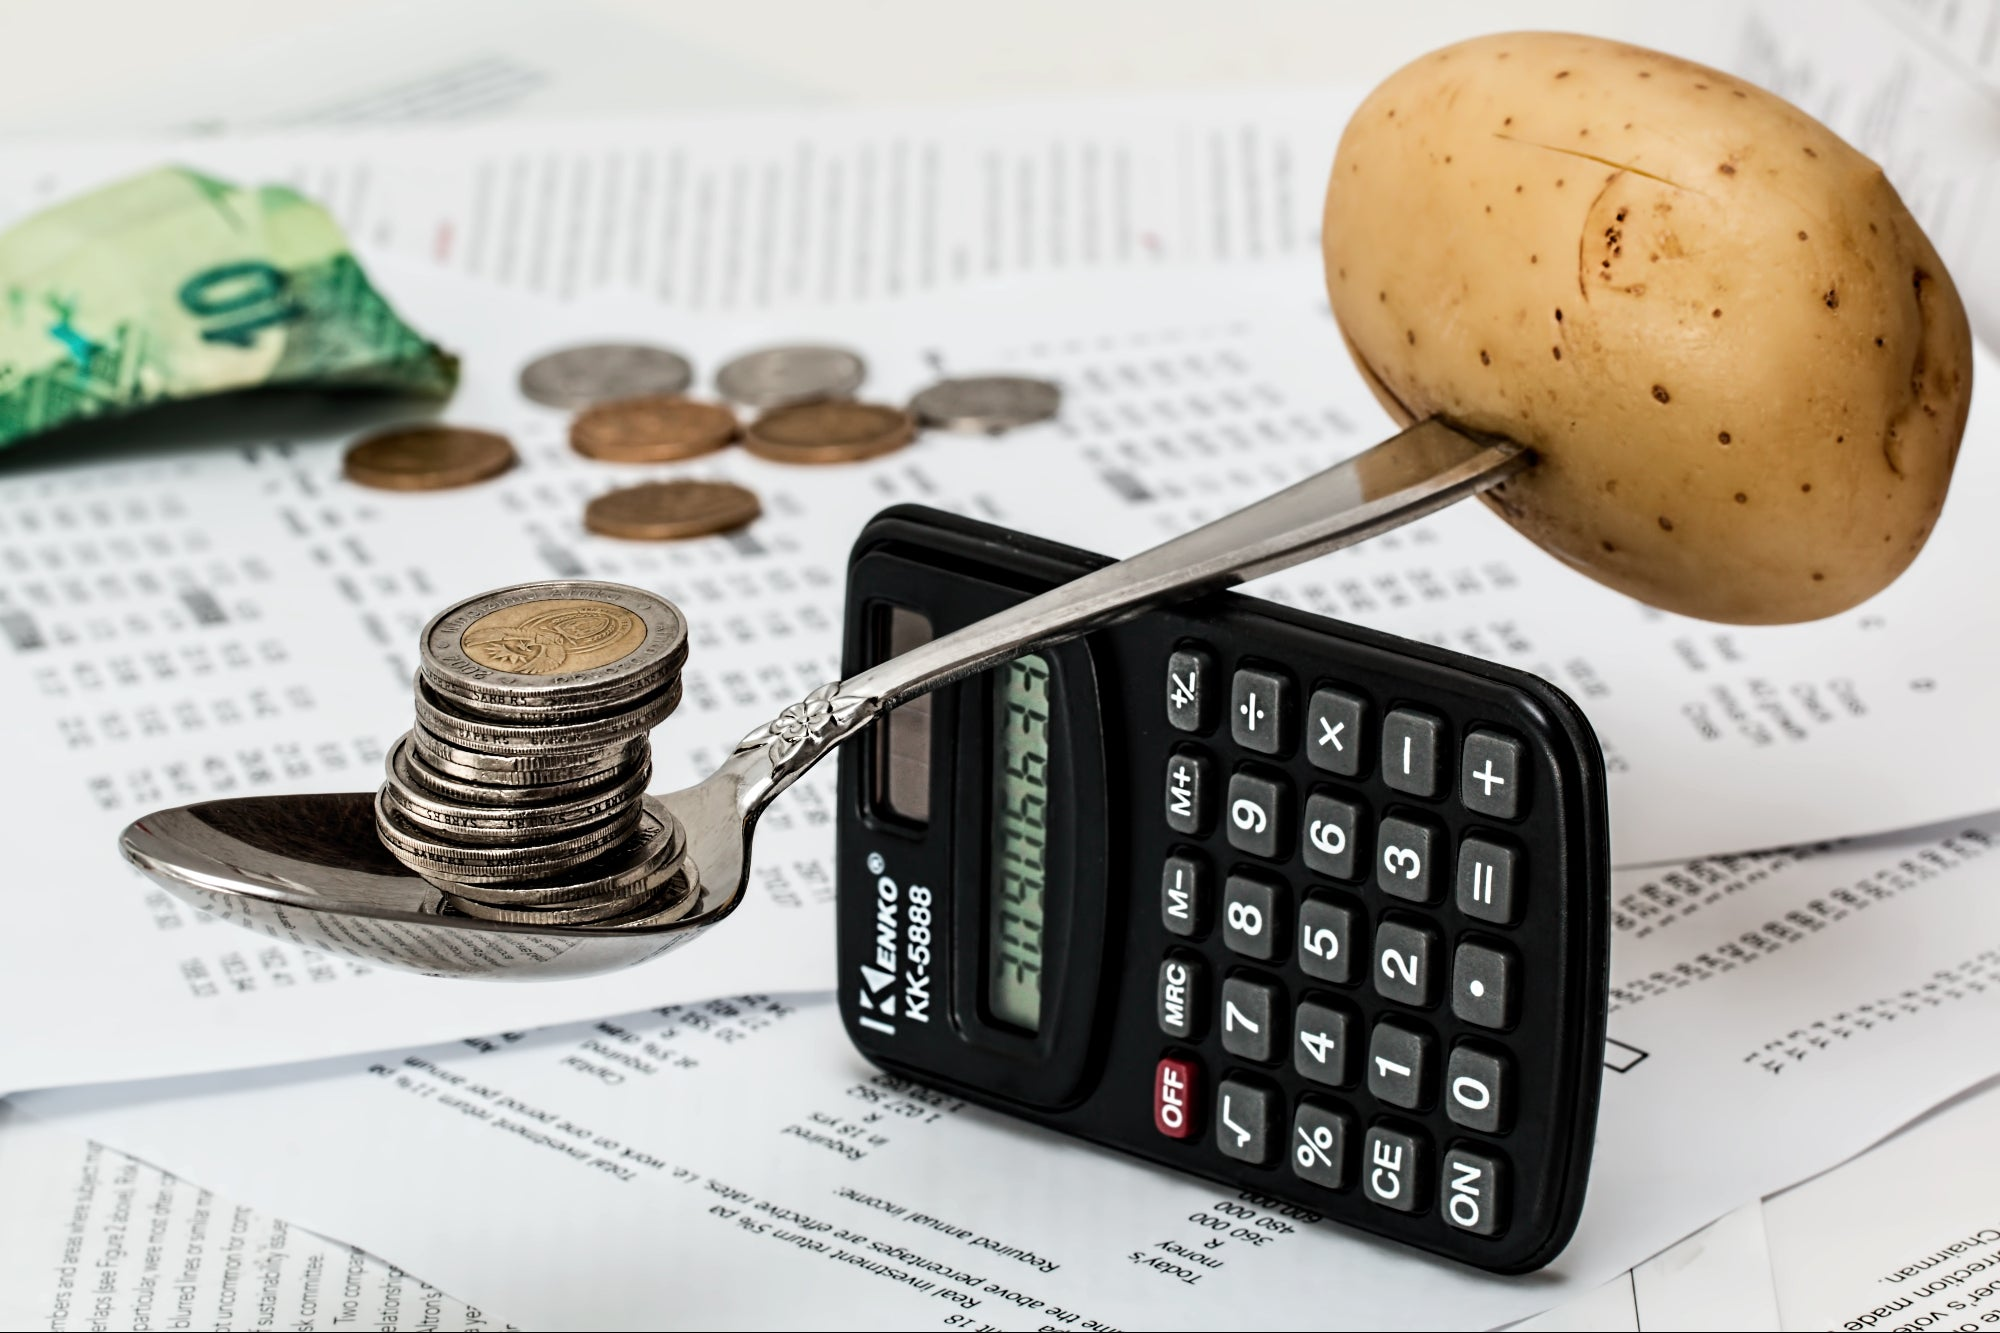 8 Simple Money Management Tips to Follow in Your Daily Life